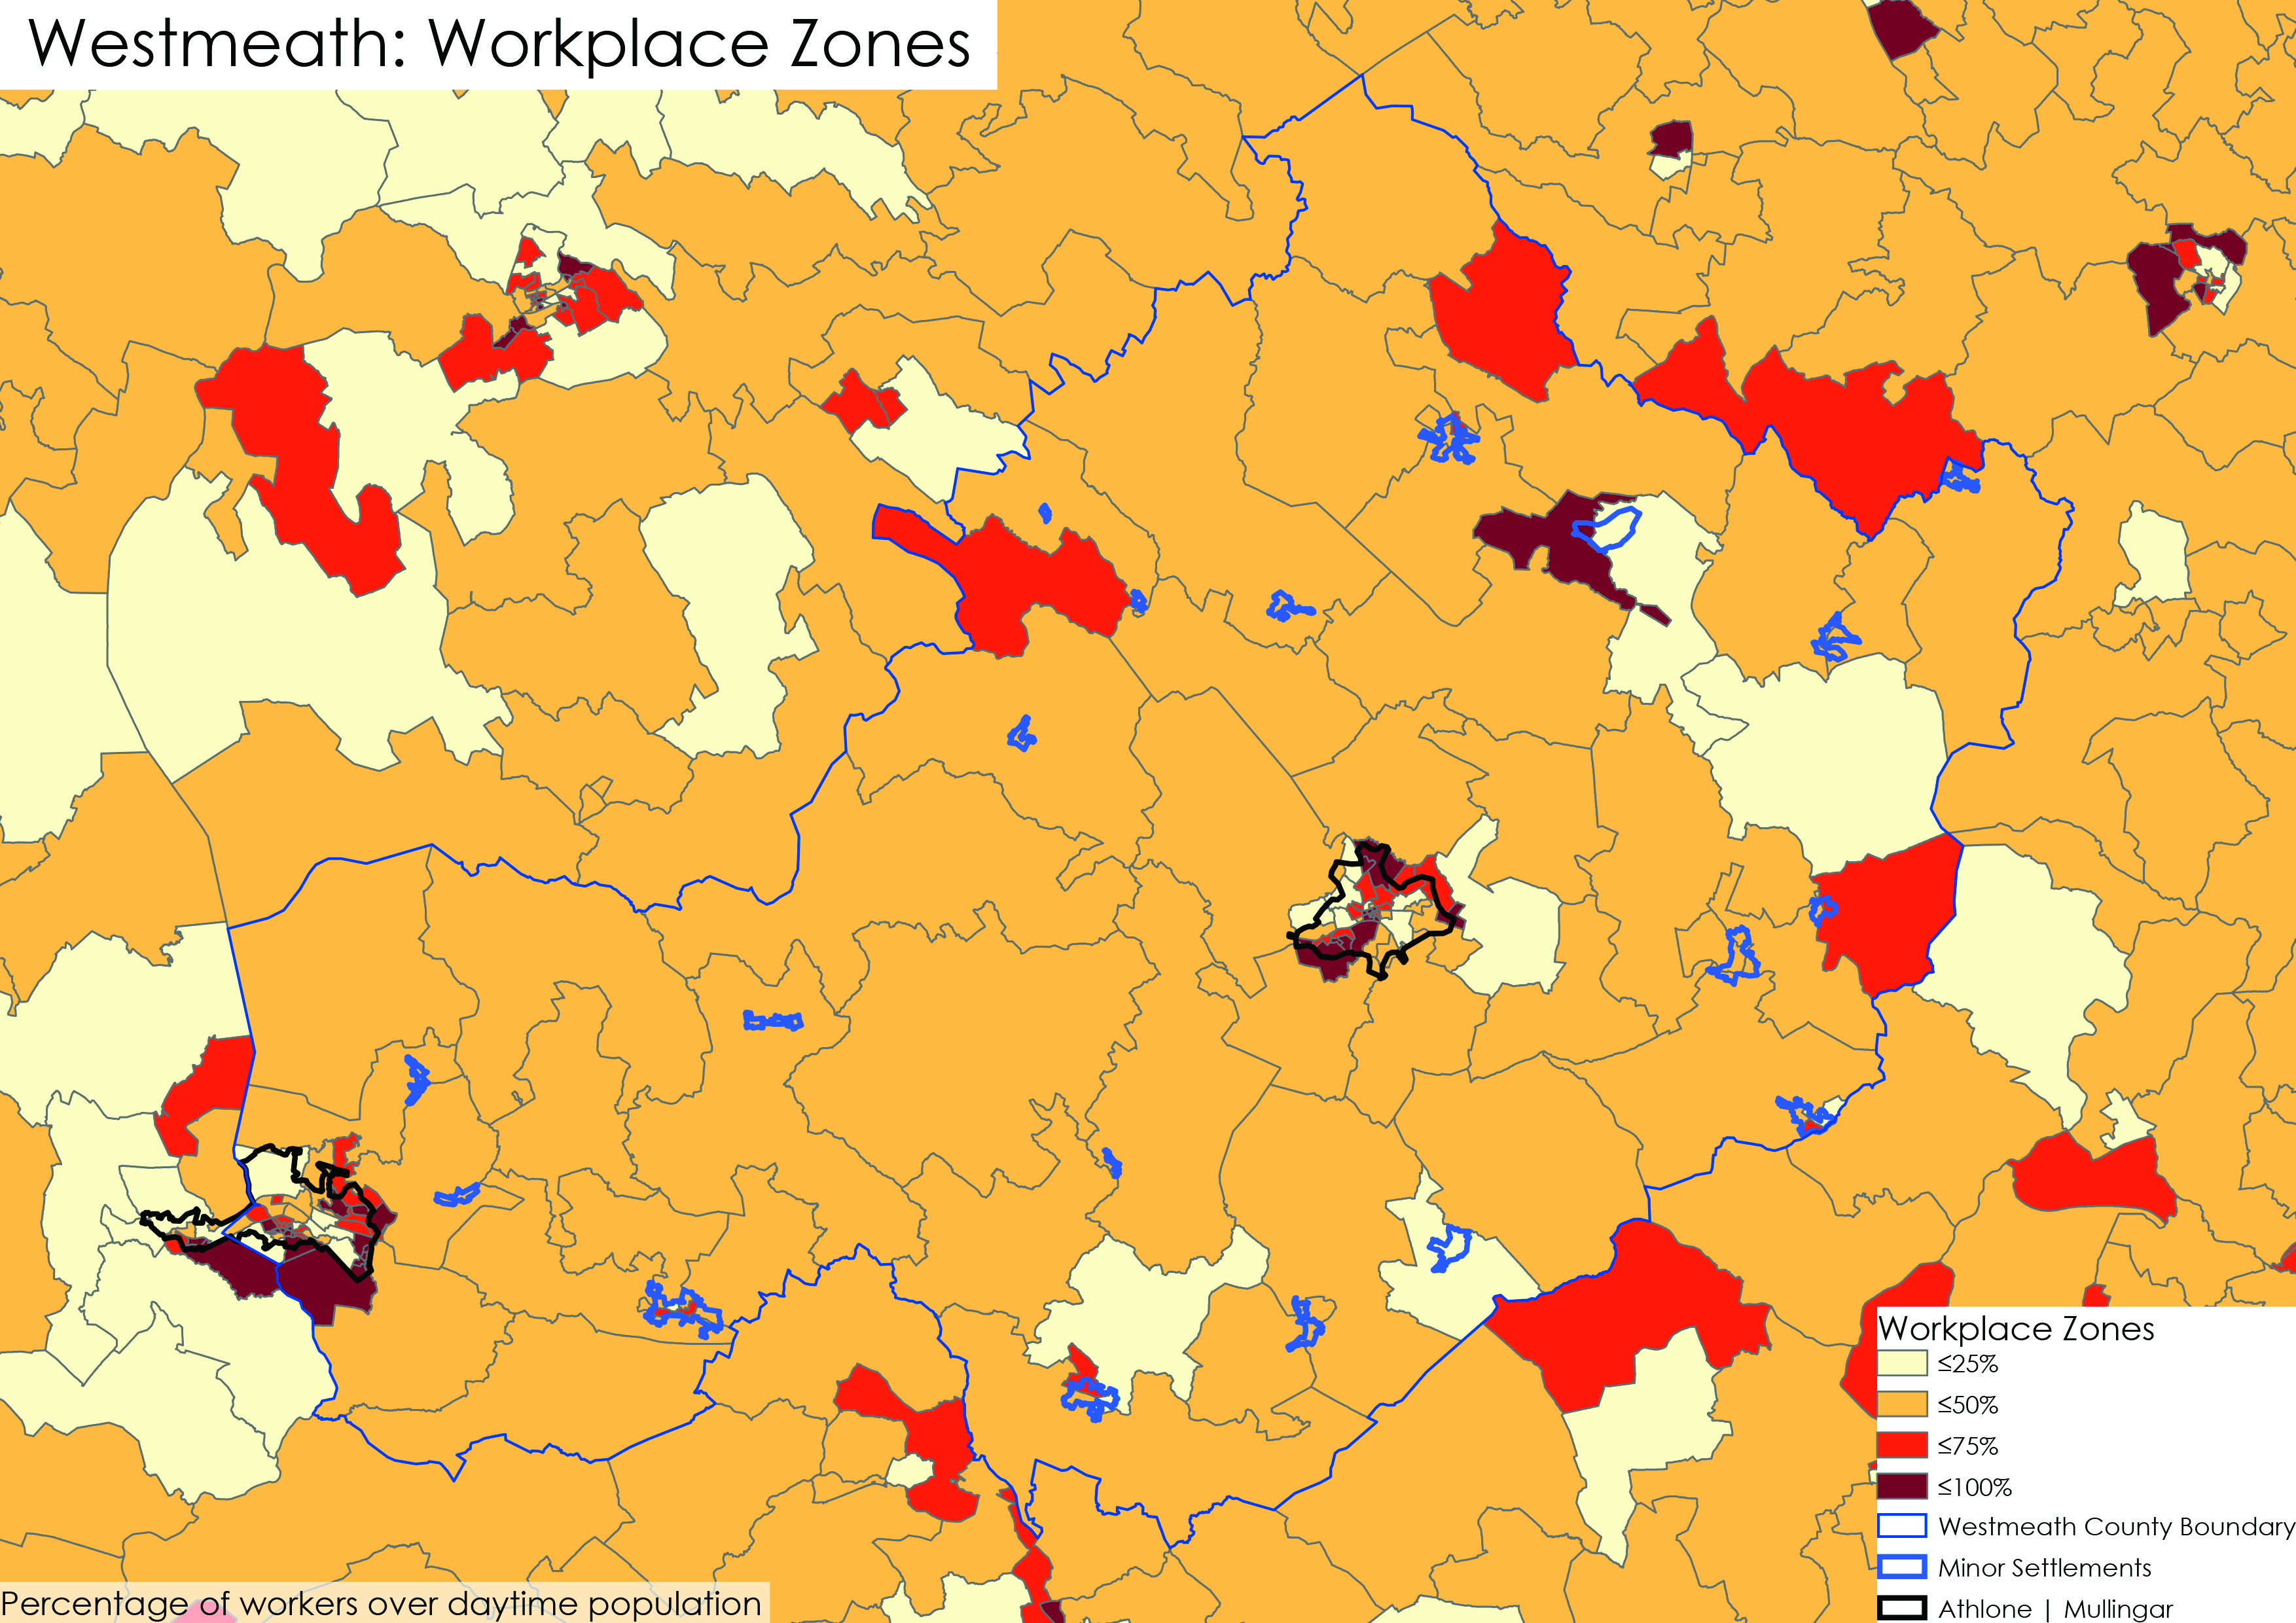 Figure 5.4 Concentration of daytime population by workplace zone